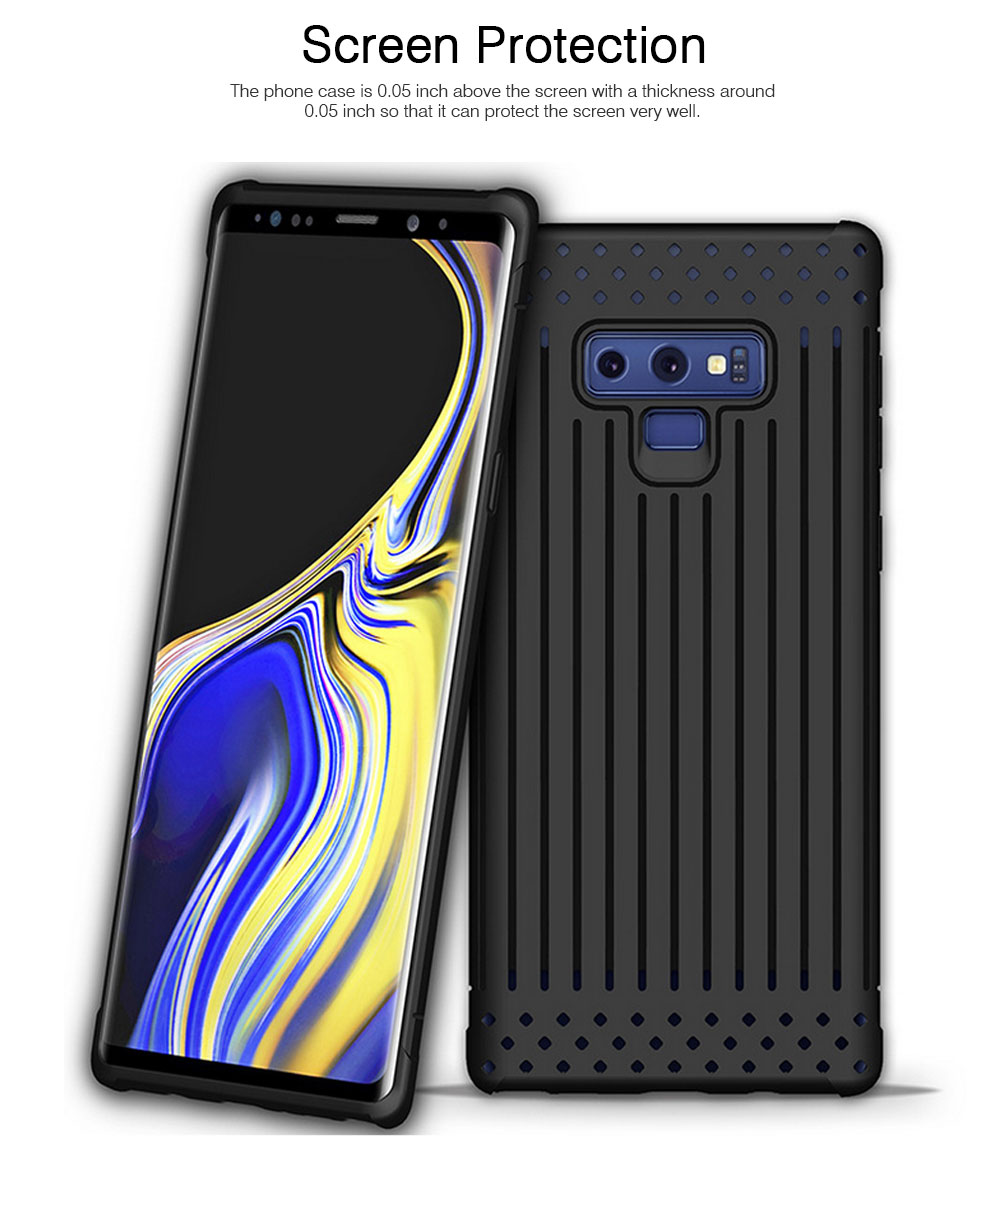 Transparent Phone Case for Galaxy Note 9, Soft Silicone Phone Protective Case Shell, Anti-smash Shockproof Cover 2